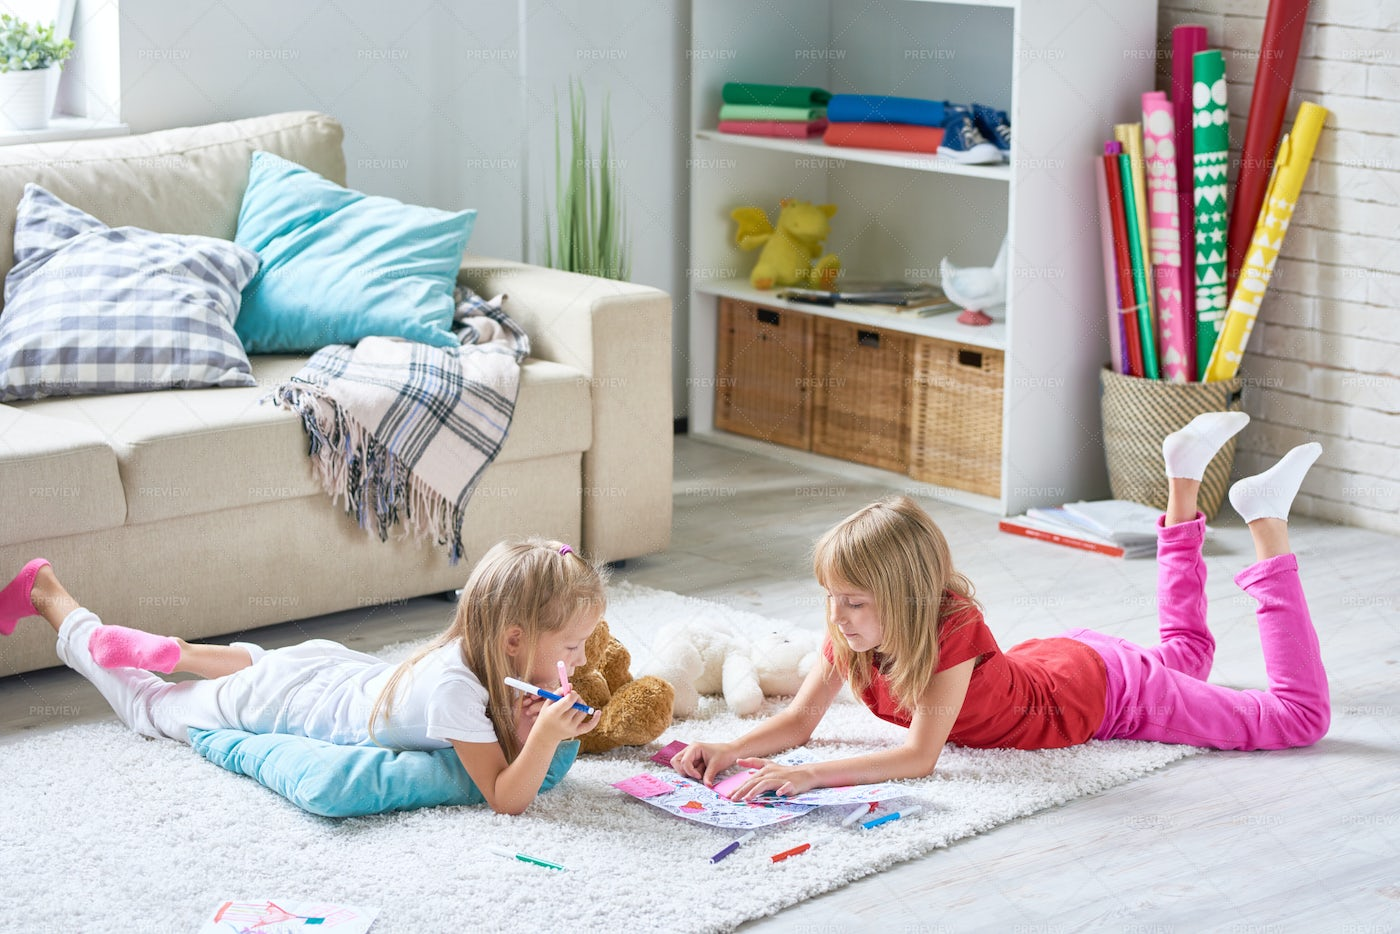 Girls Coloring Pictures On Floor: Stock Photos